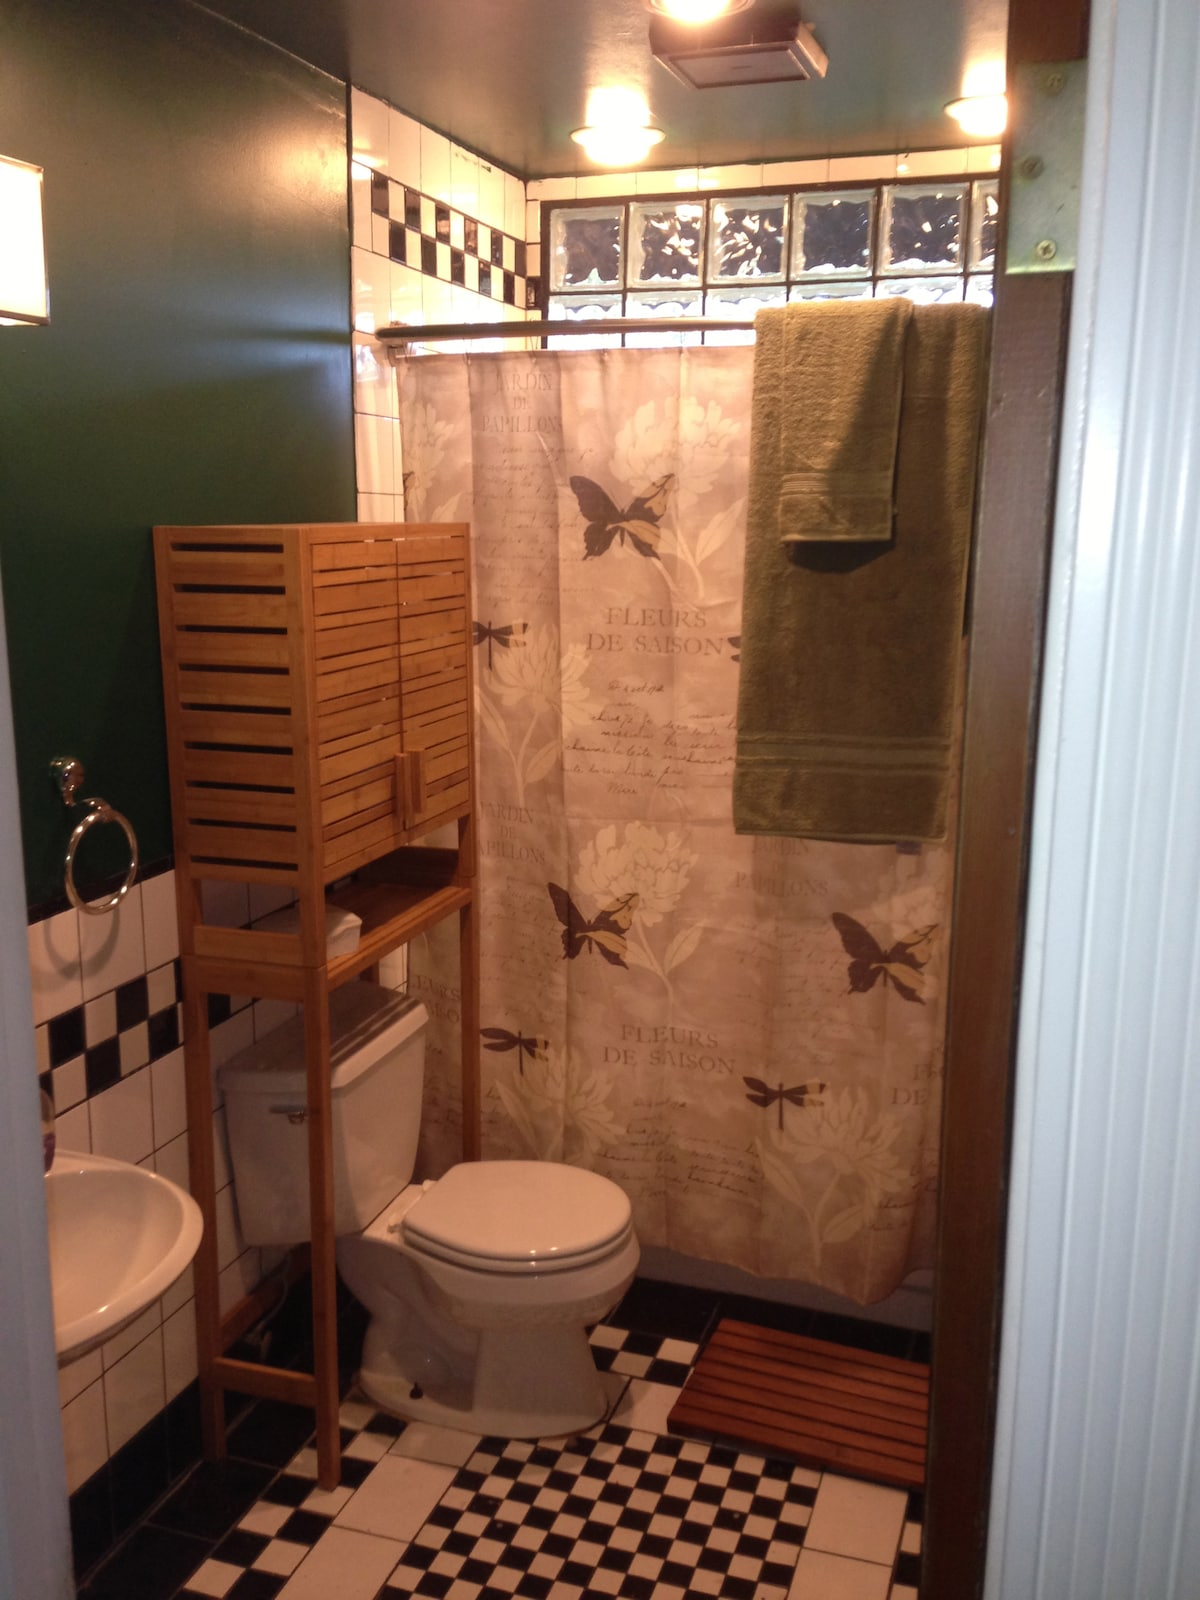 Washroom features classic deco tiling with bamboo and teak accessories throughout. We provide Garnier Shampoo, Conditioner, and Tone Mango Body Wash. There is also a hair dryer provided for your convenience.k